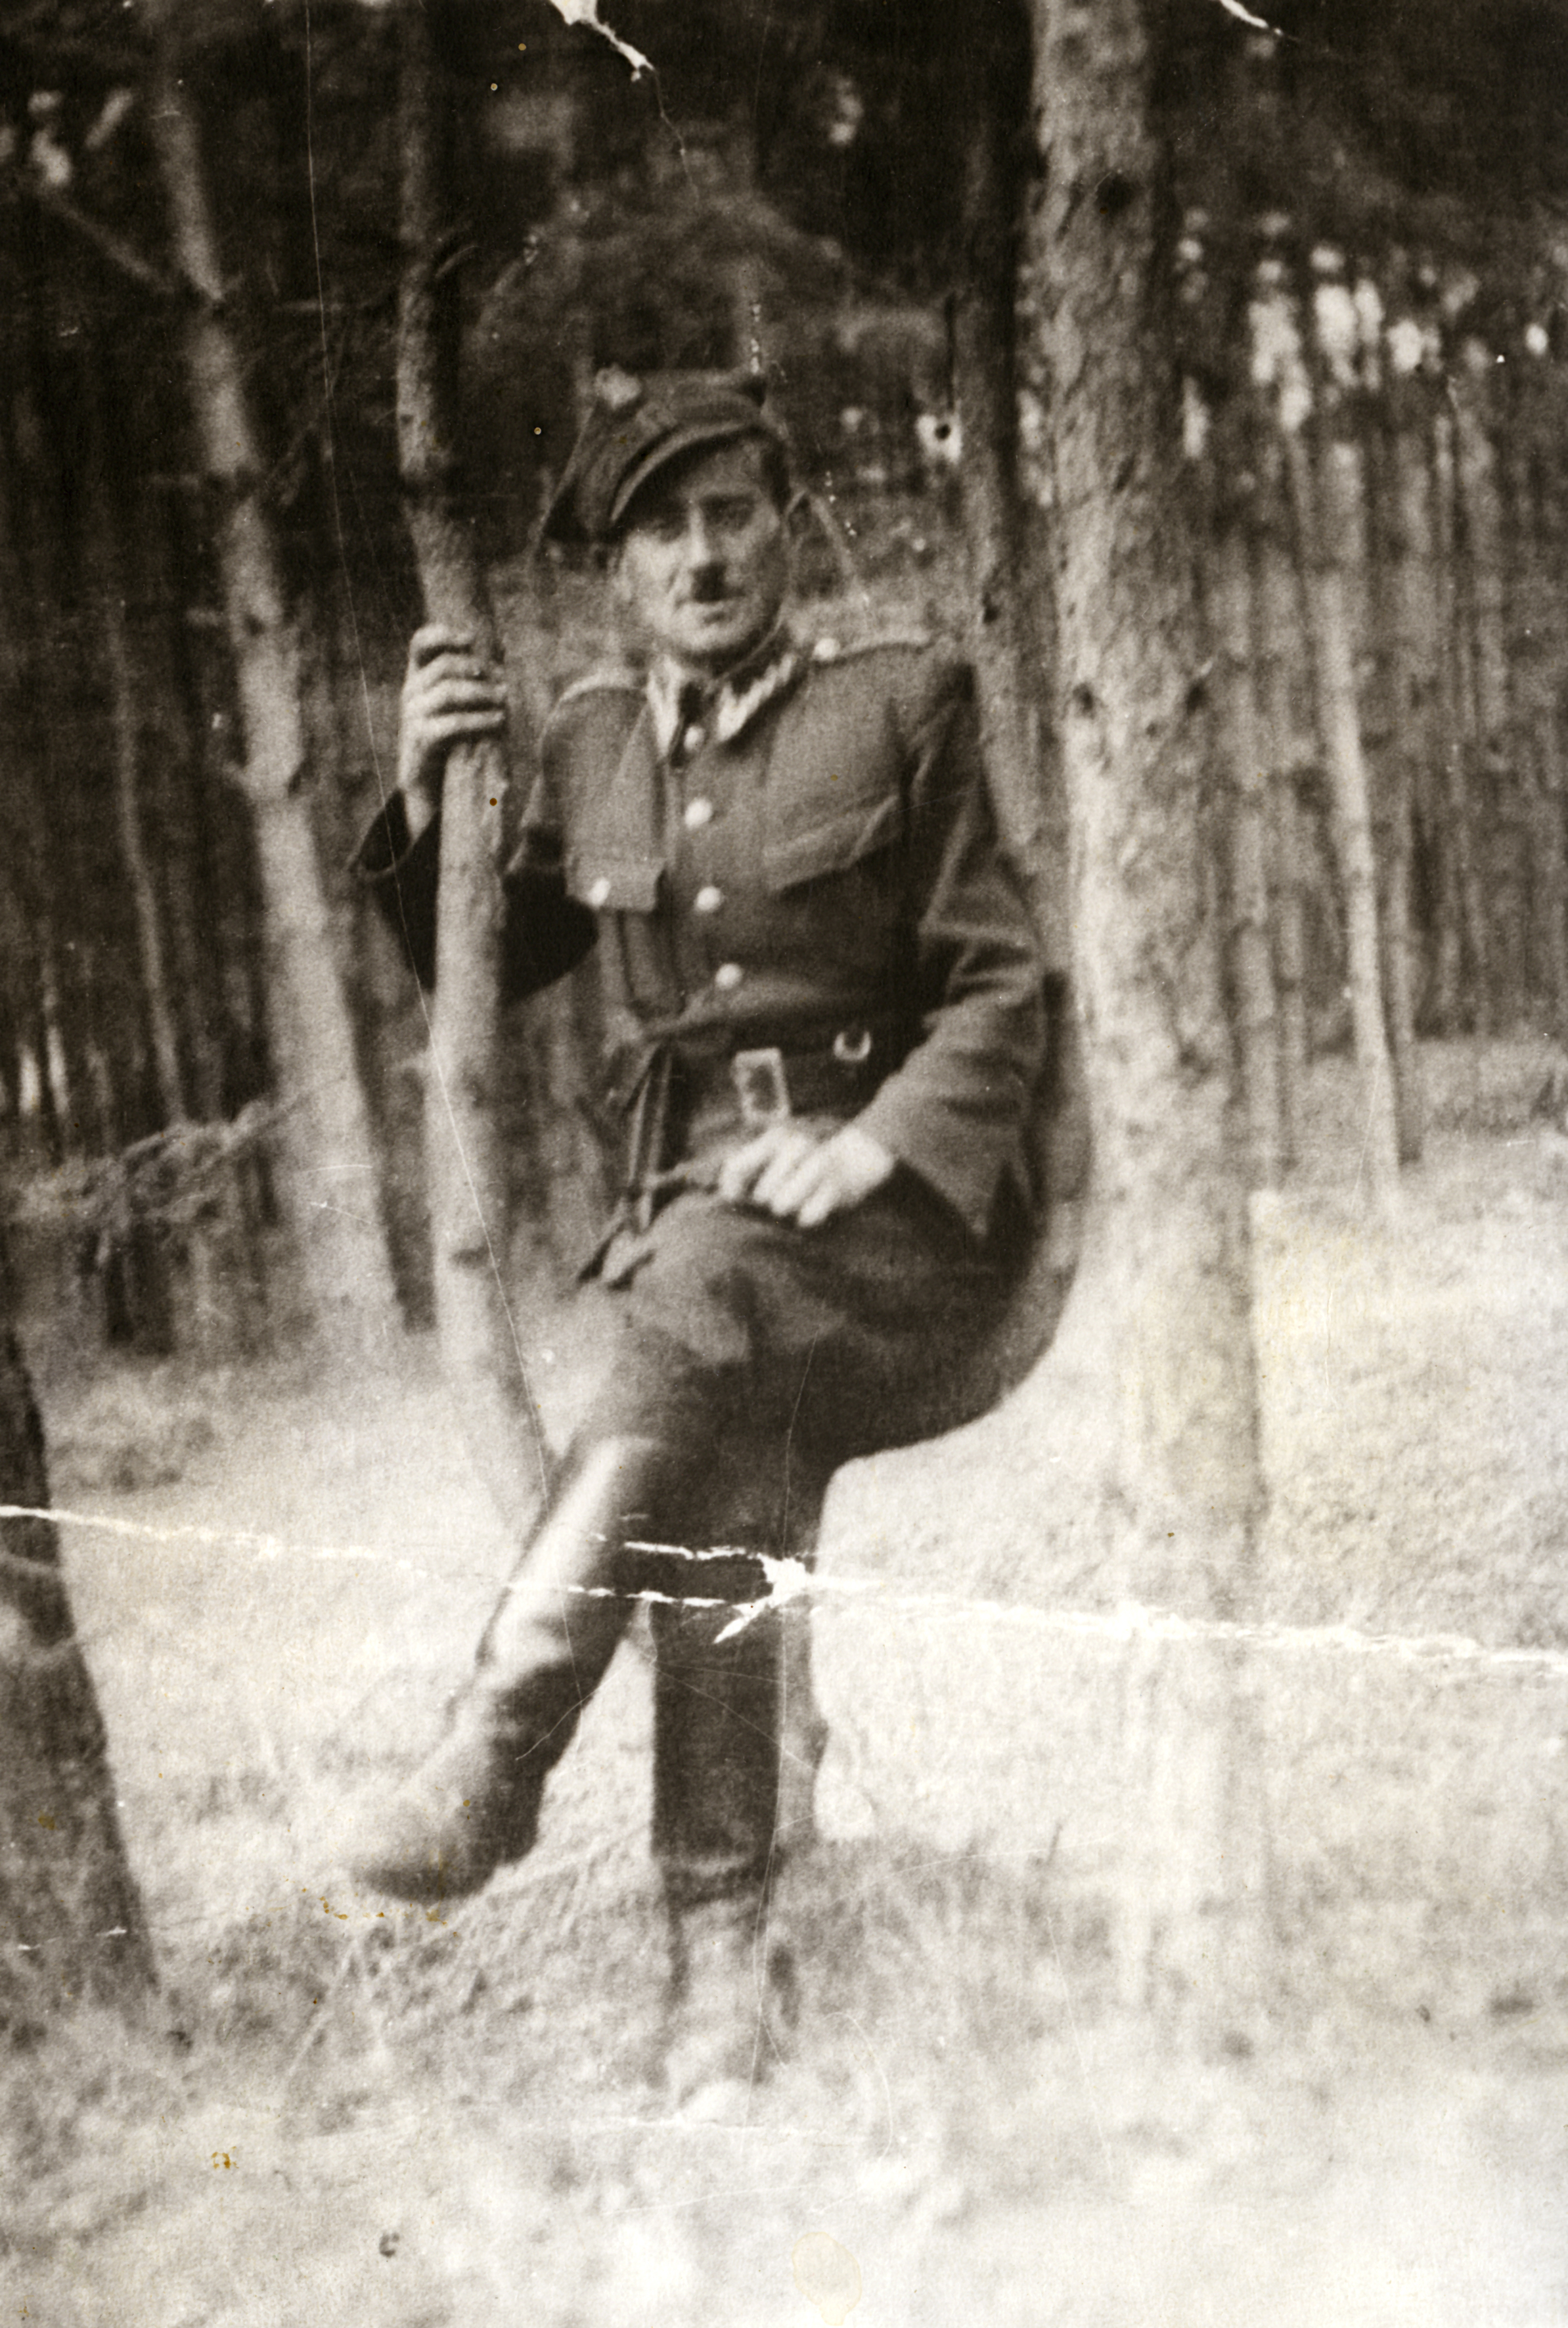 Mieczyslaw Najman in the Polish Military in the USSR